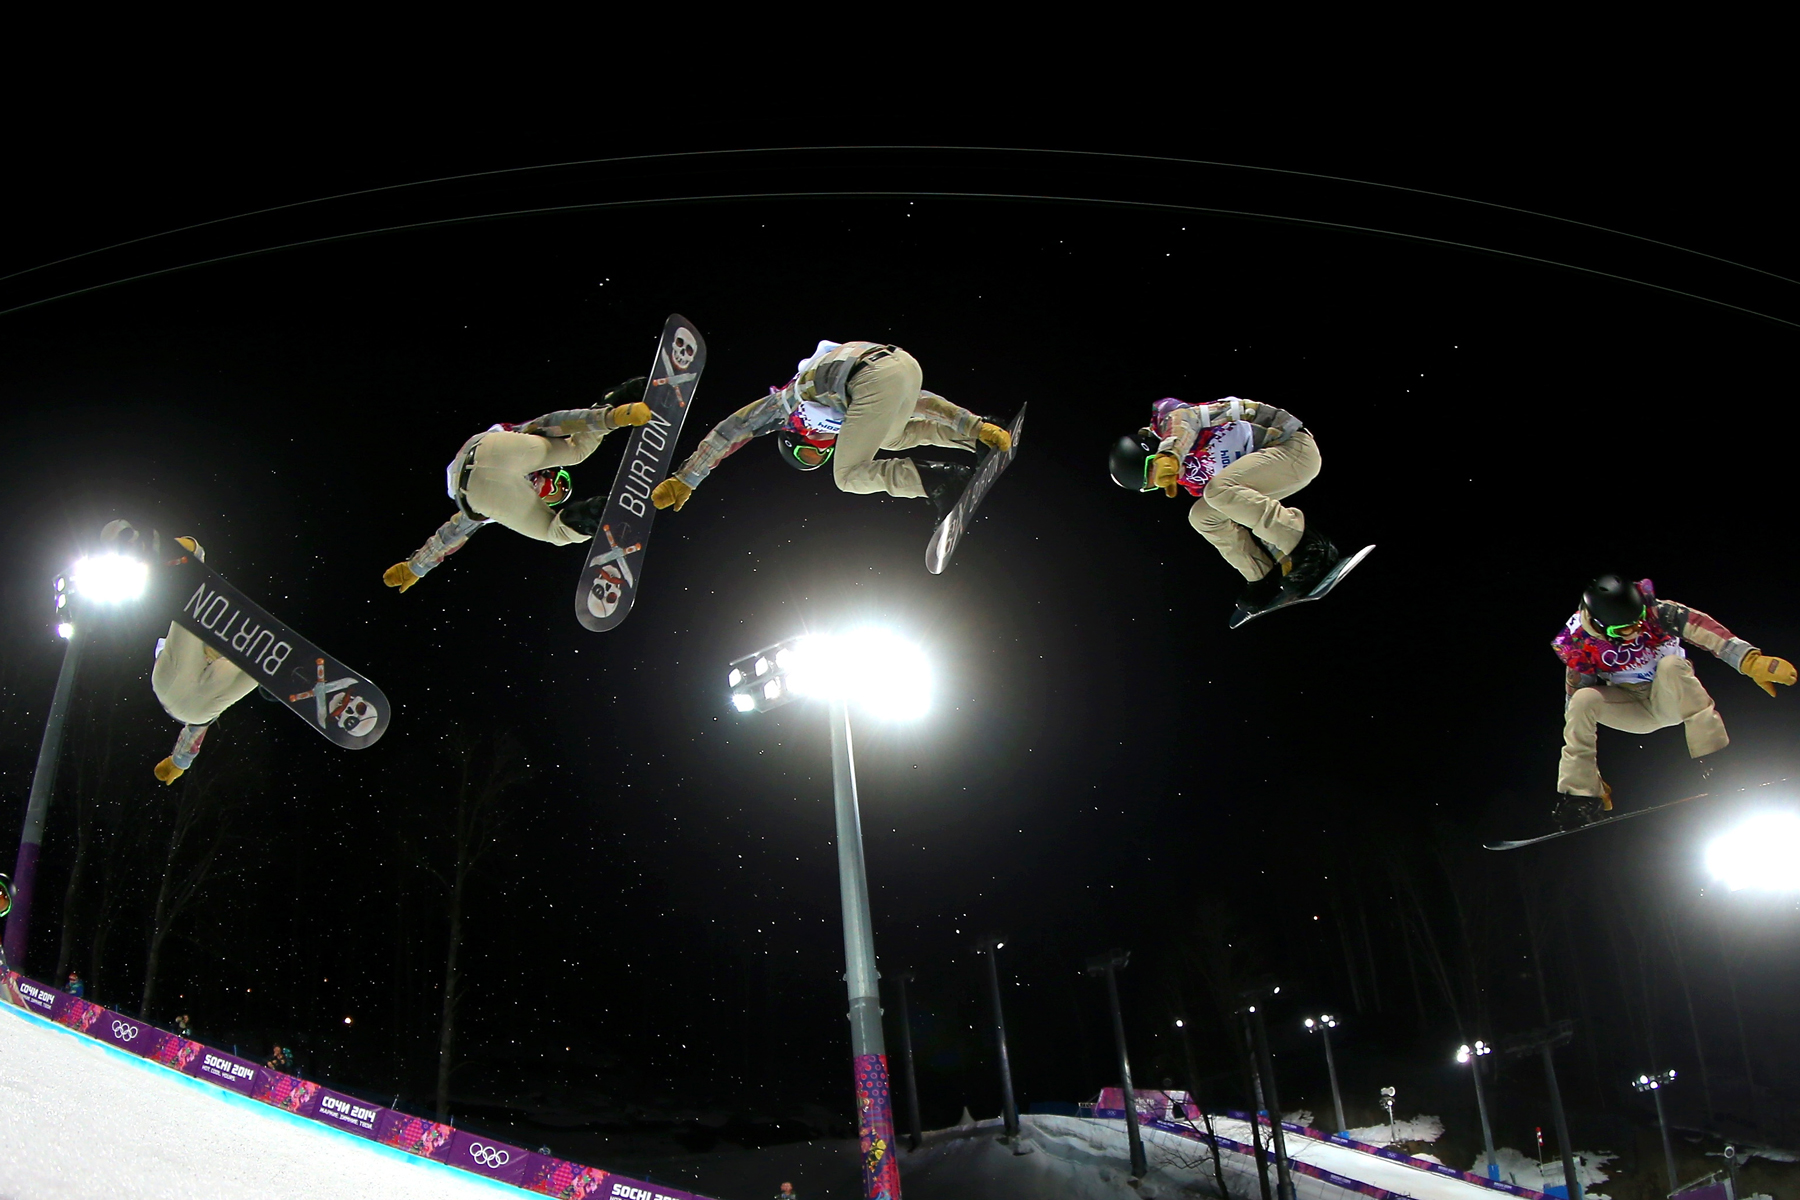 Olympic Winter Games Snowboarding Criteria